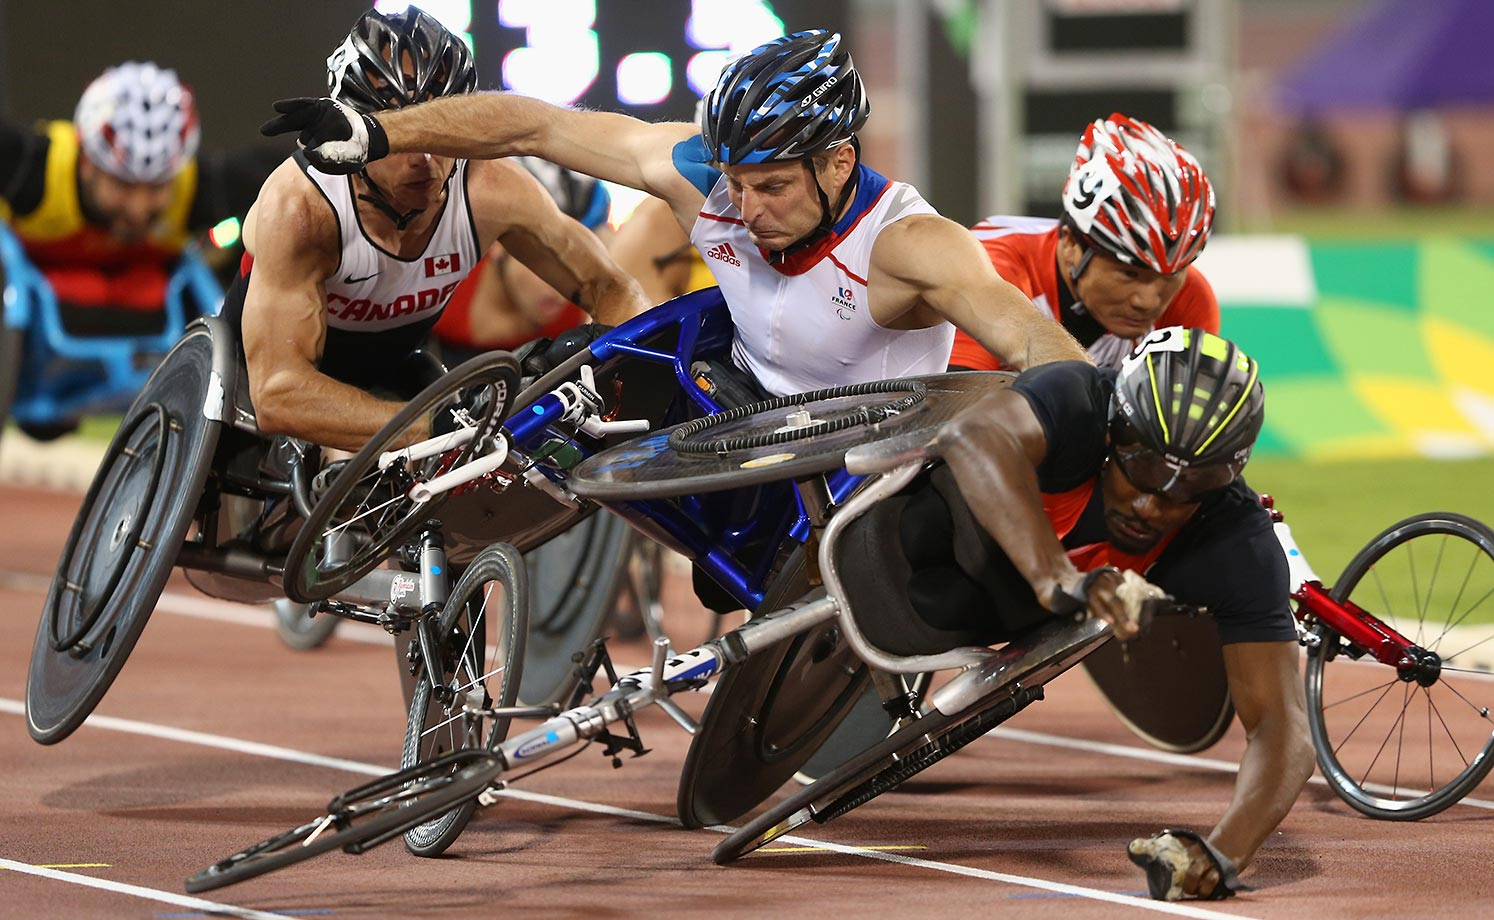 Alhassane Balde (right) collides with Julien Casoli during the 1,500m T54 heats at the IPC Athletics World Championships in Doha, Qatar.